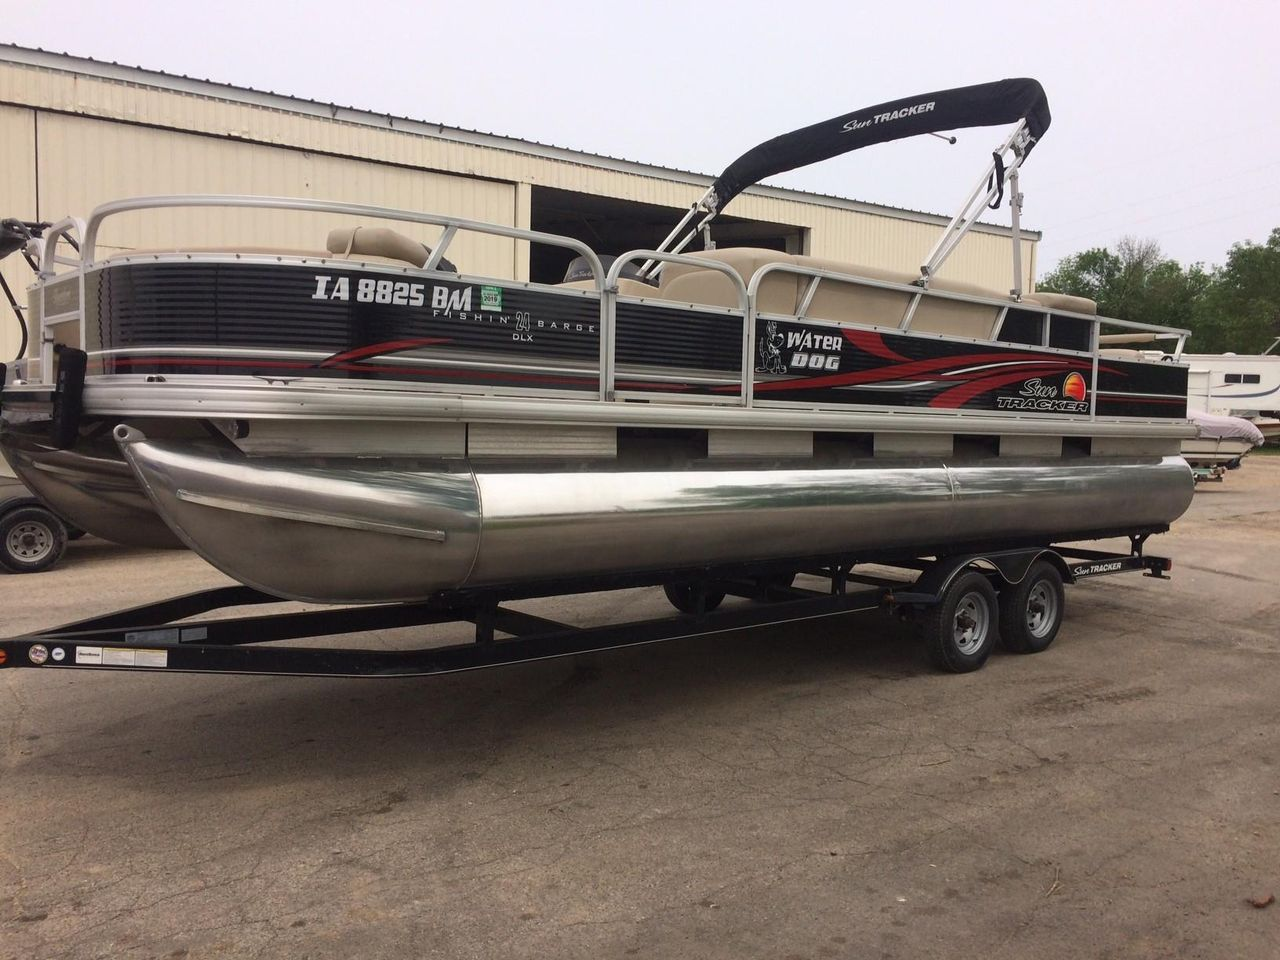 2013 Used Sun Tracker 240 Party Barge Pontoon Boat For Sale